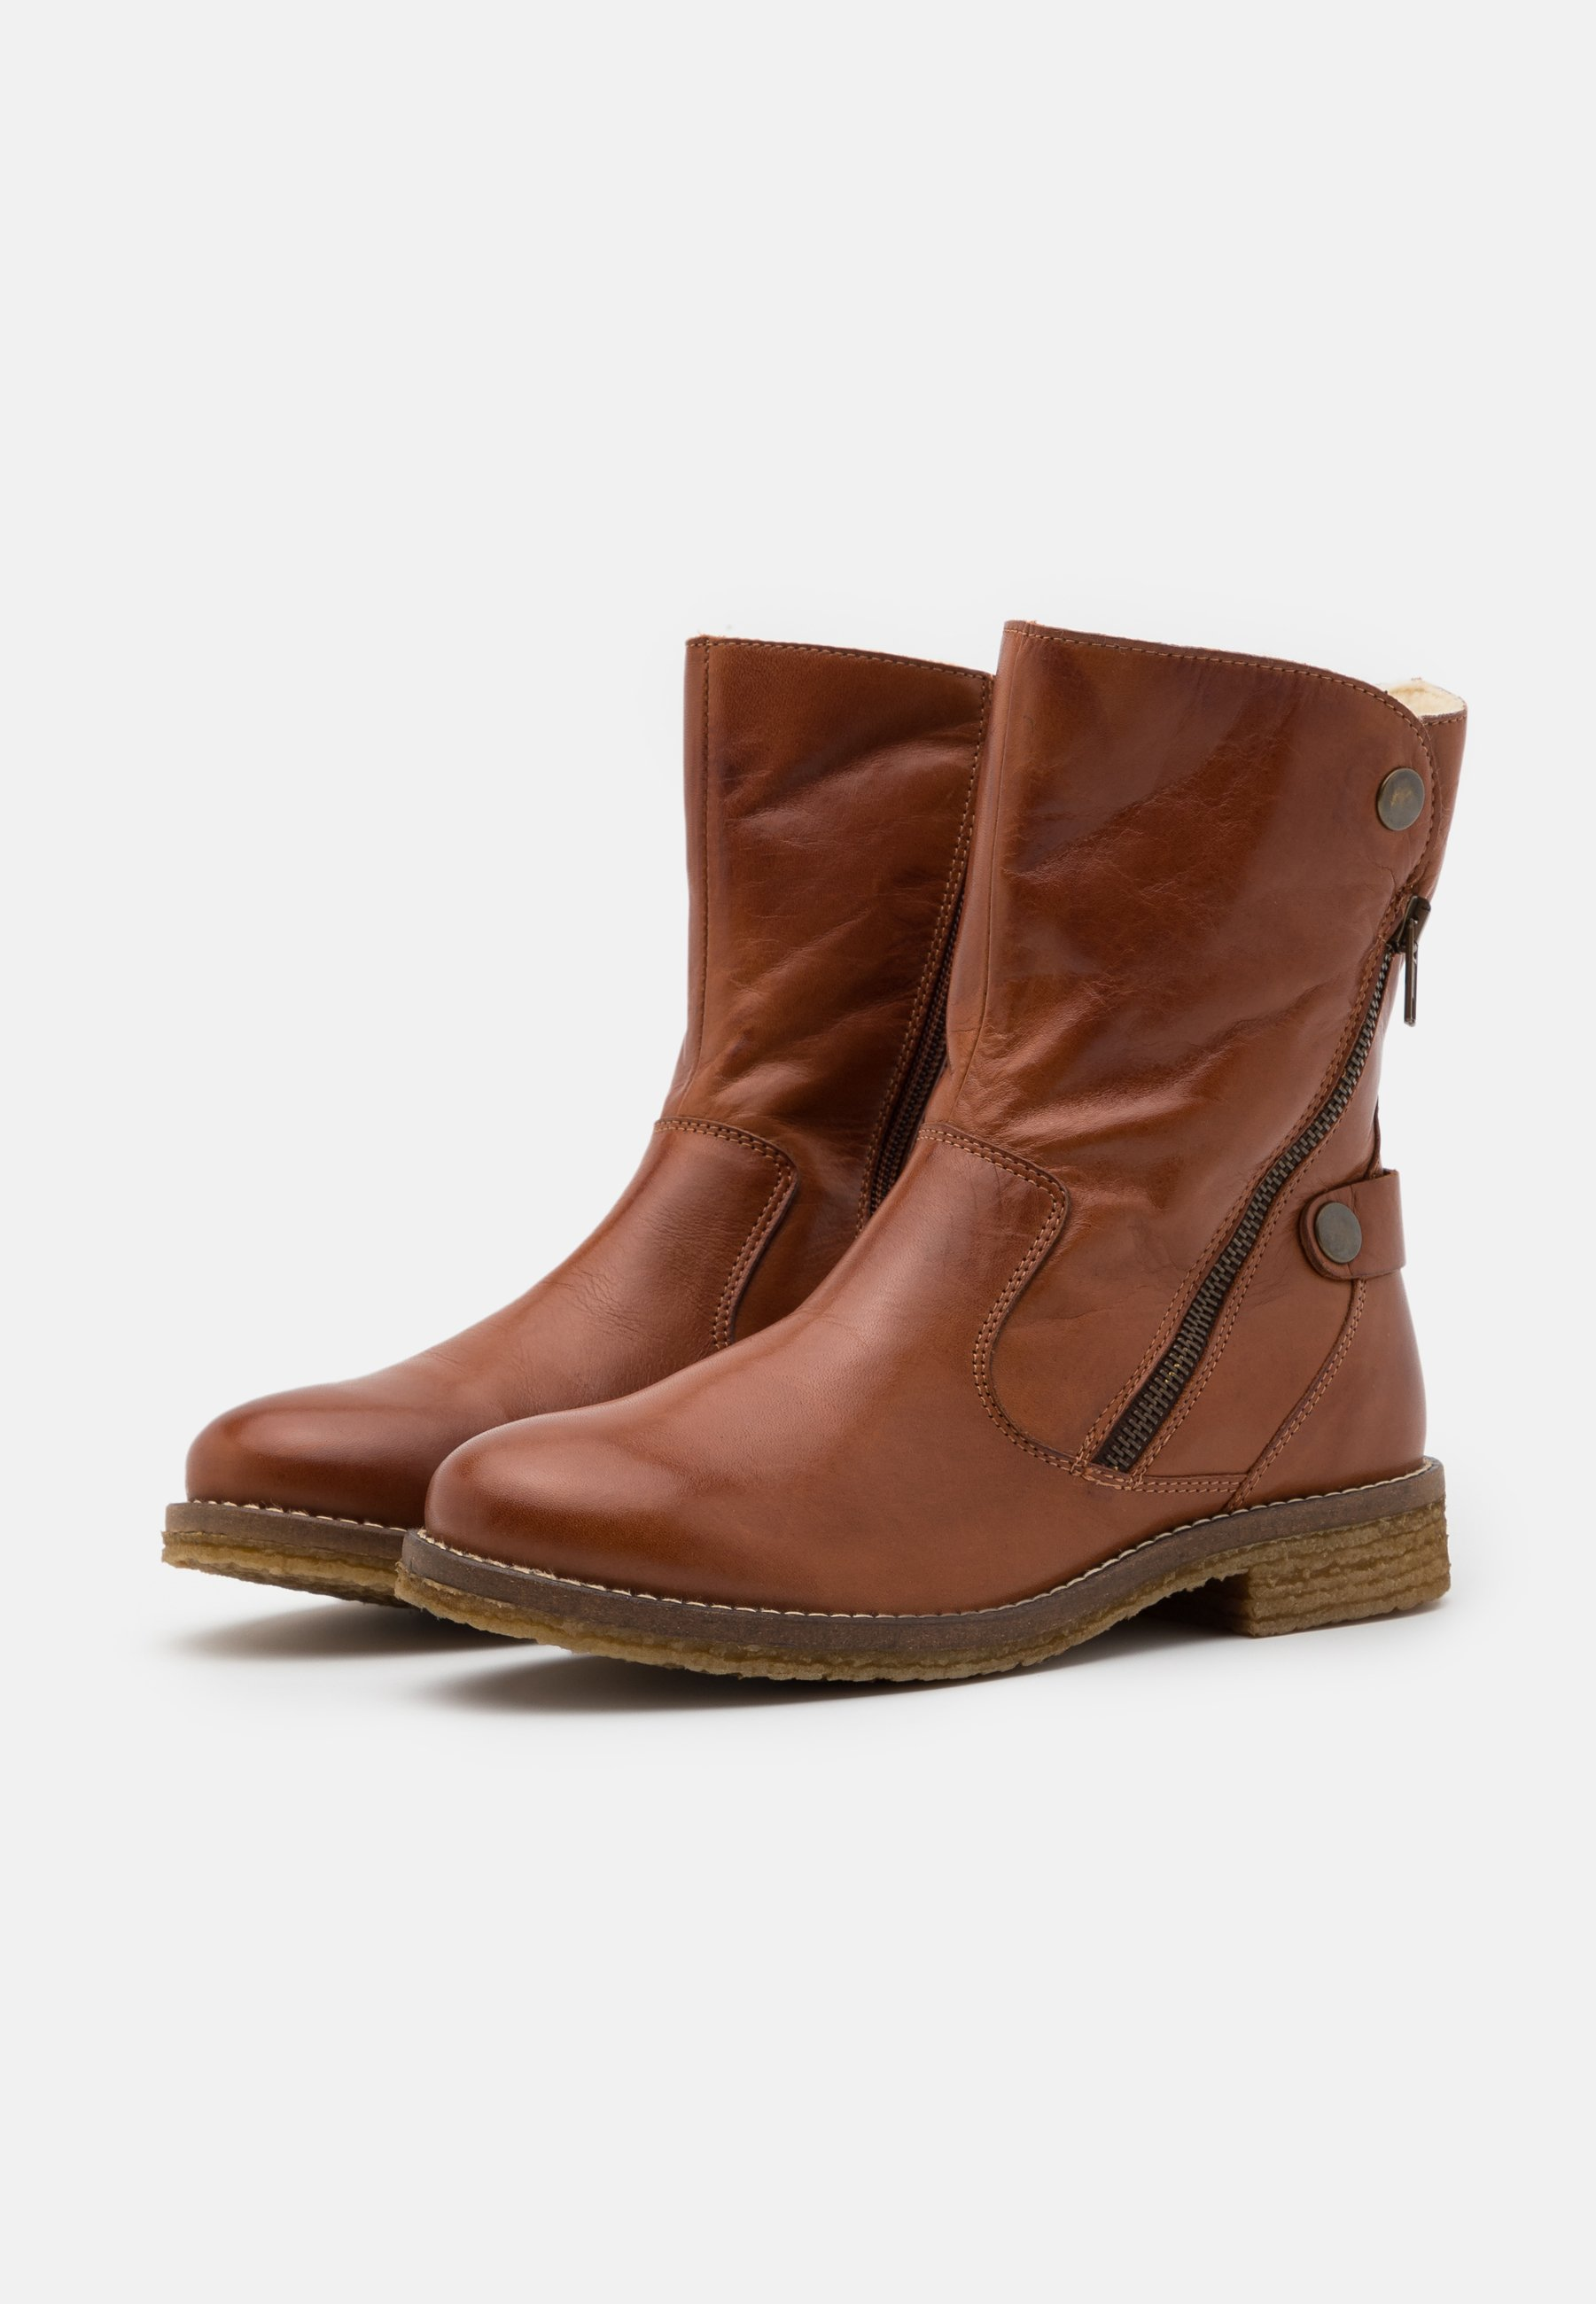 Bianco Biaatalia Winter Zipper Boot - Snowboot/winterstiefel Cognac